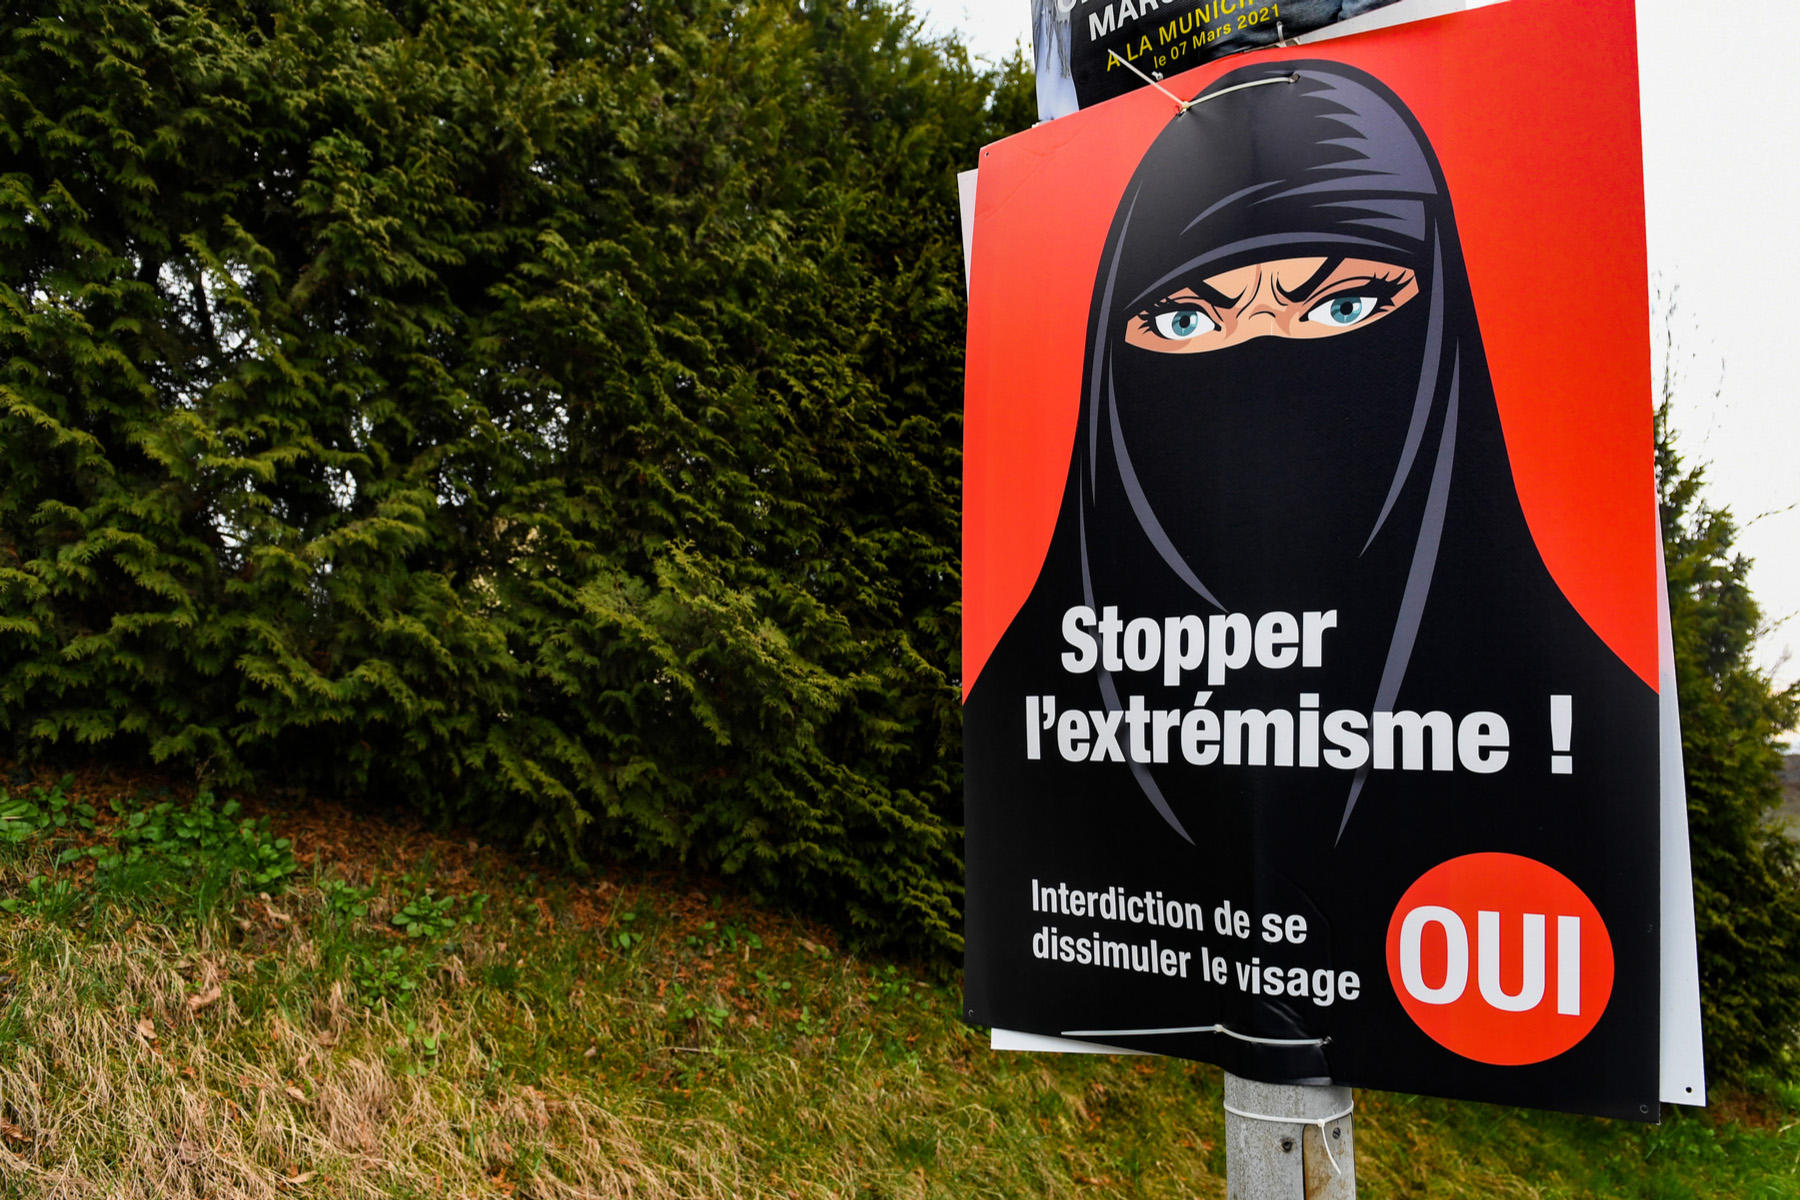 Poster supporting a face covering ban in Switzerland